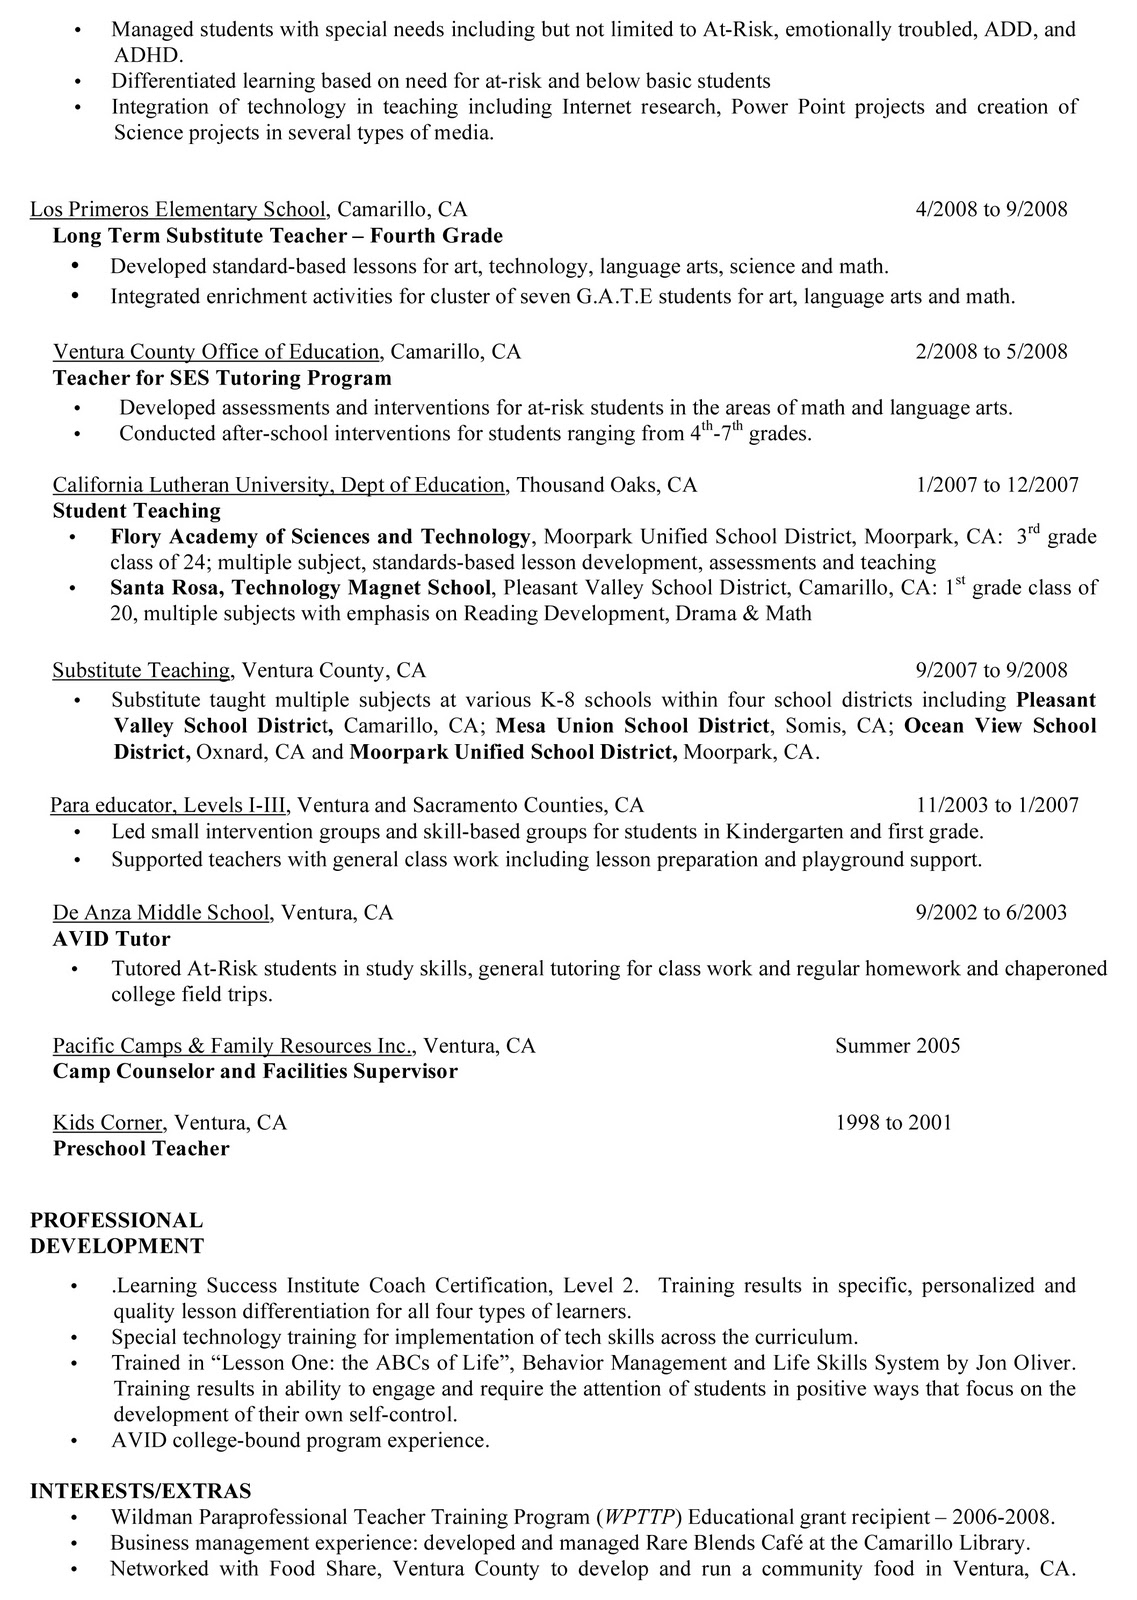 esl teacher resume and cover letter